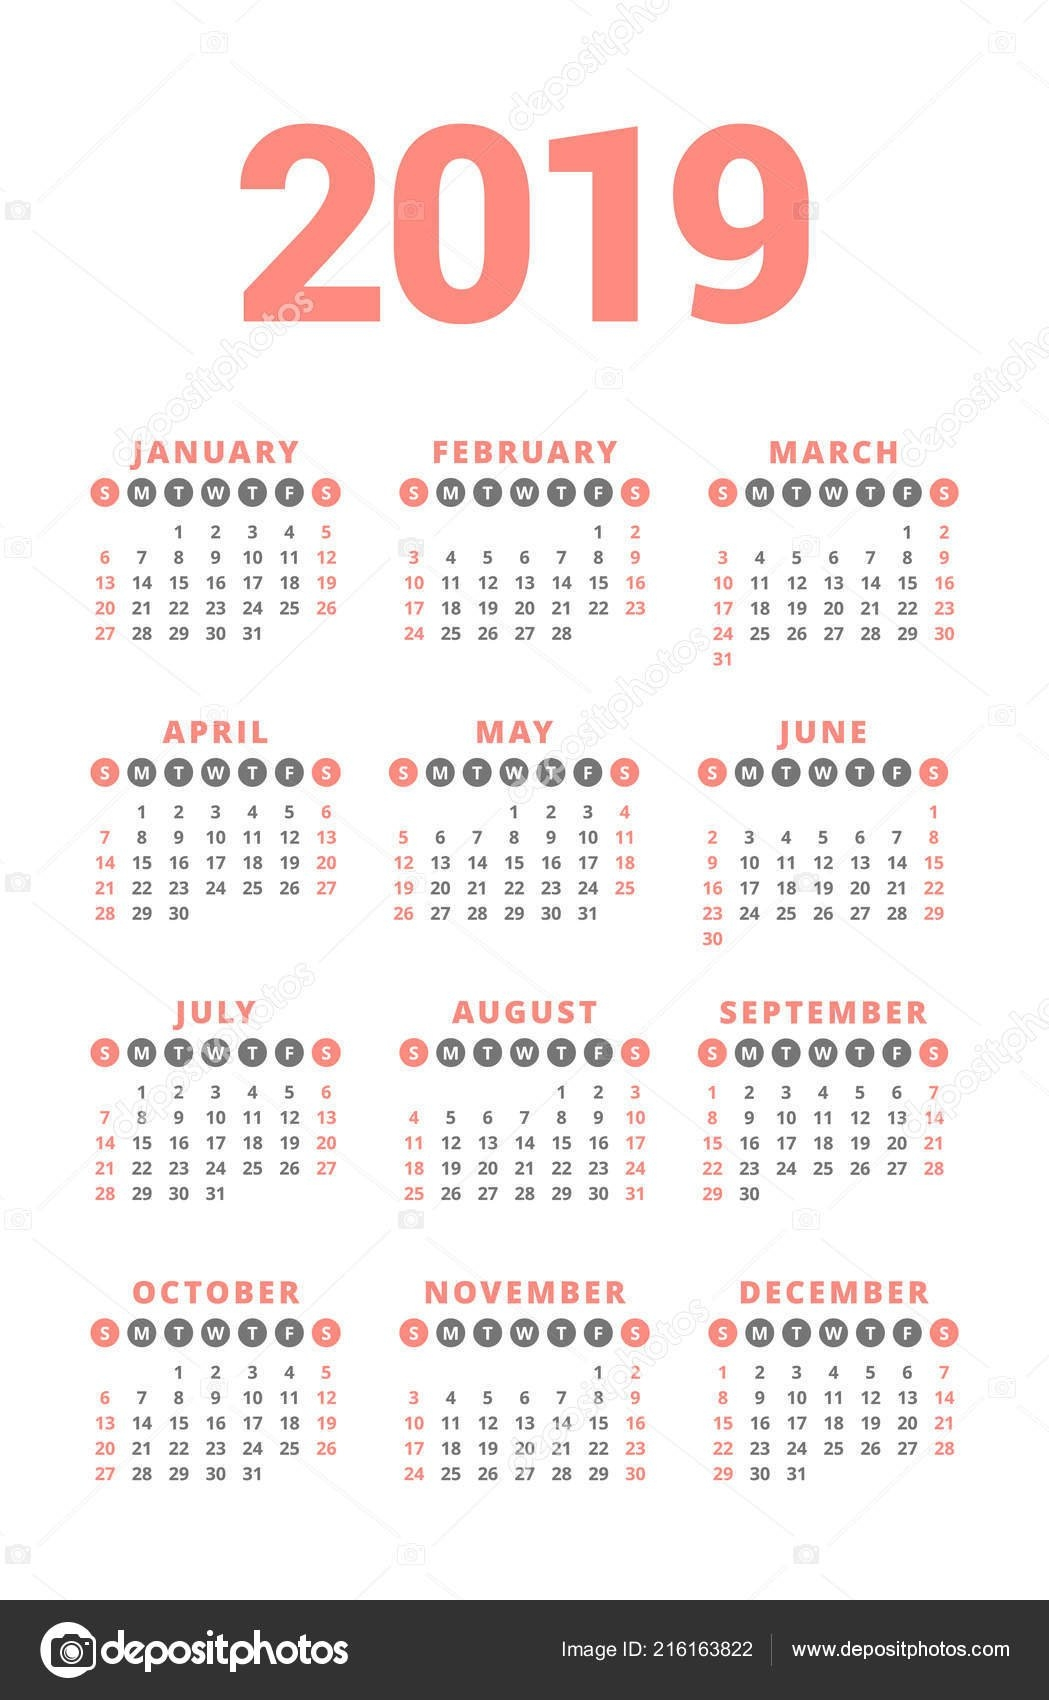 Calendar 2019 Year White Background Week Starts Sunday Columns Rows 3 Column Calendar 2019